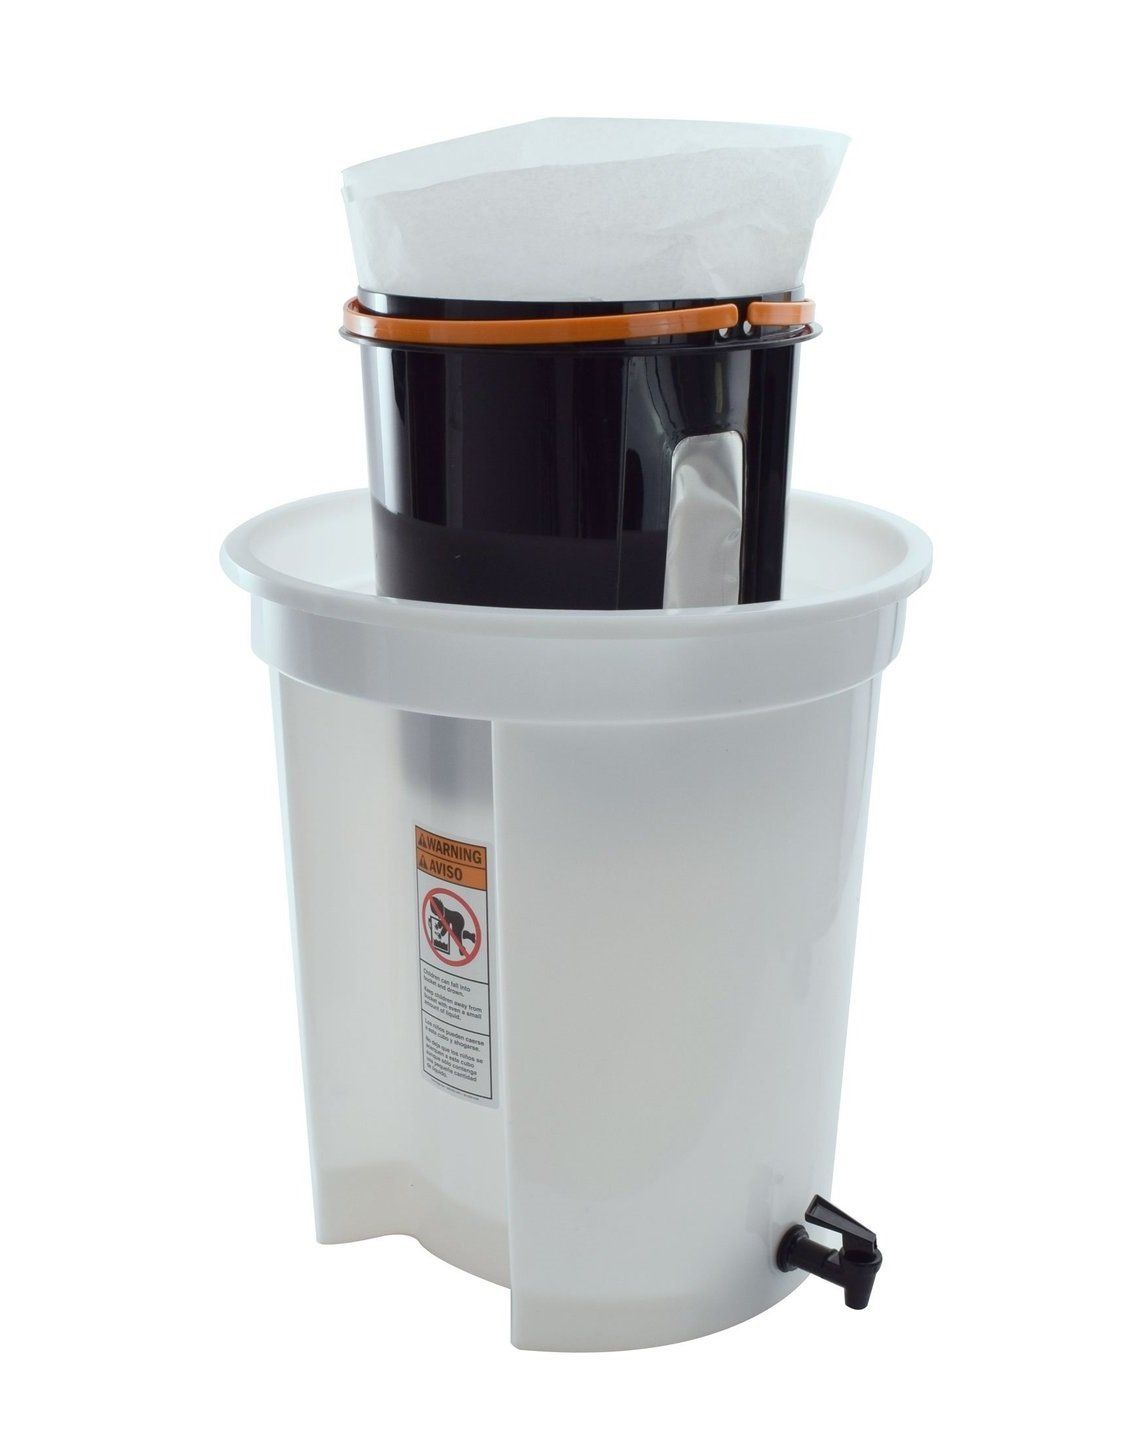 Brewista Pro 2 Commercial Cold Brewing System - Complete Kit (BCP2PRMSYS)